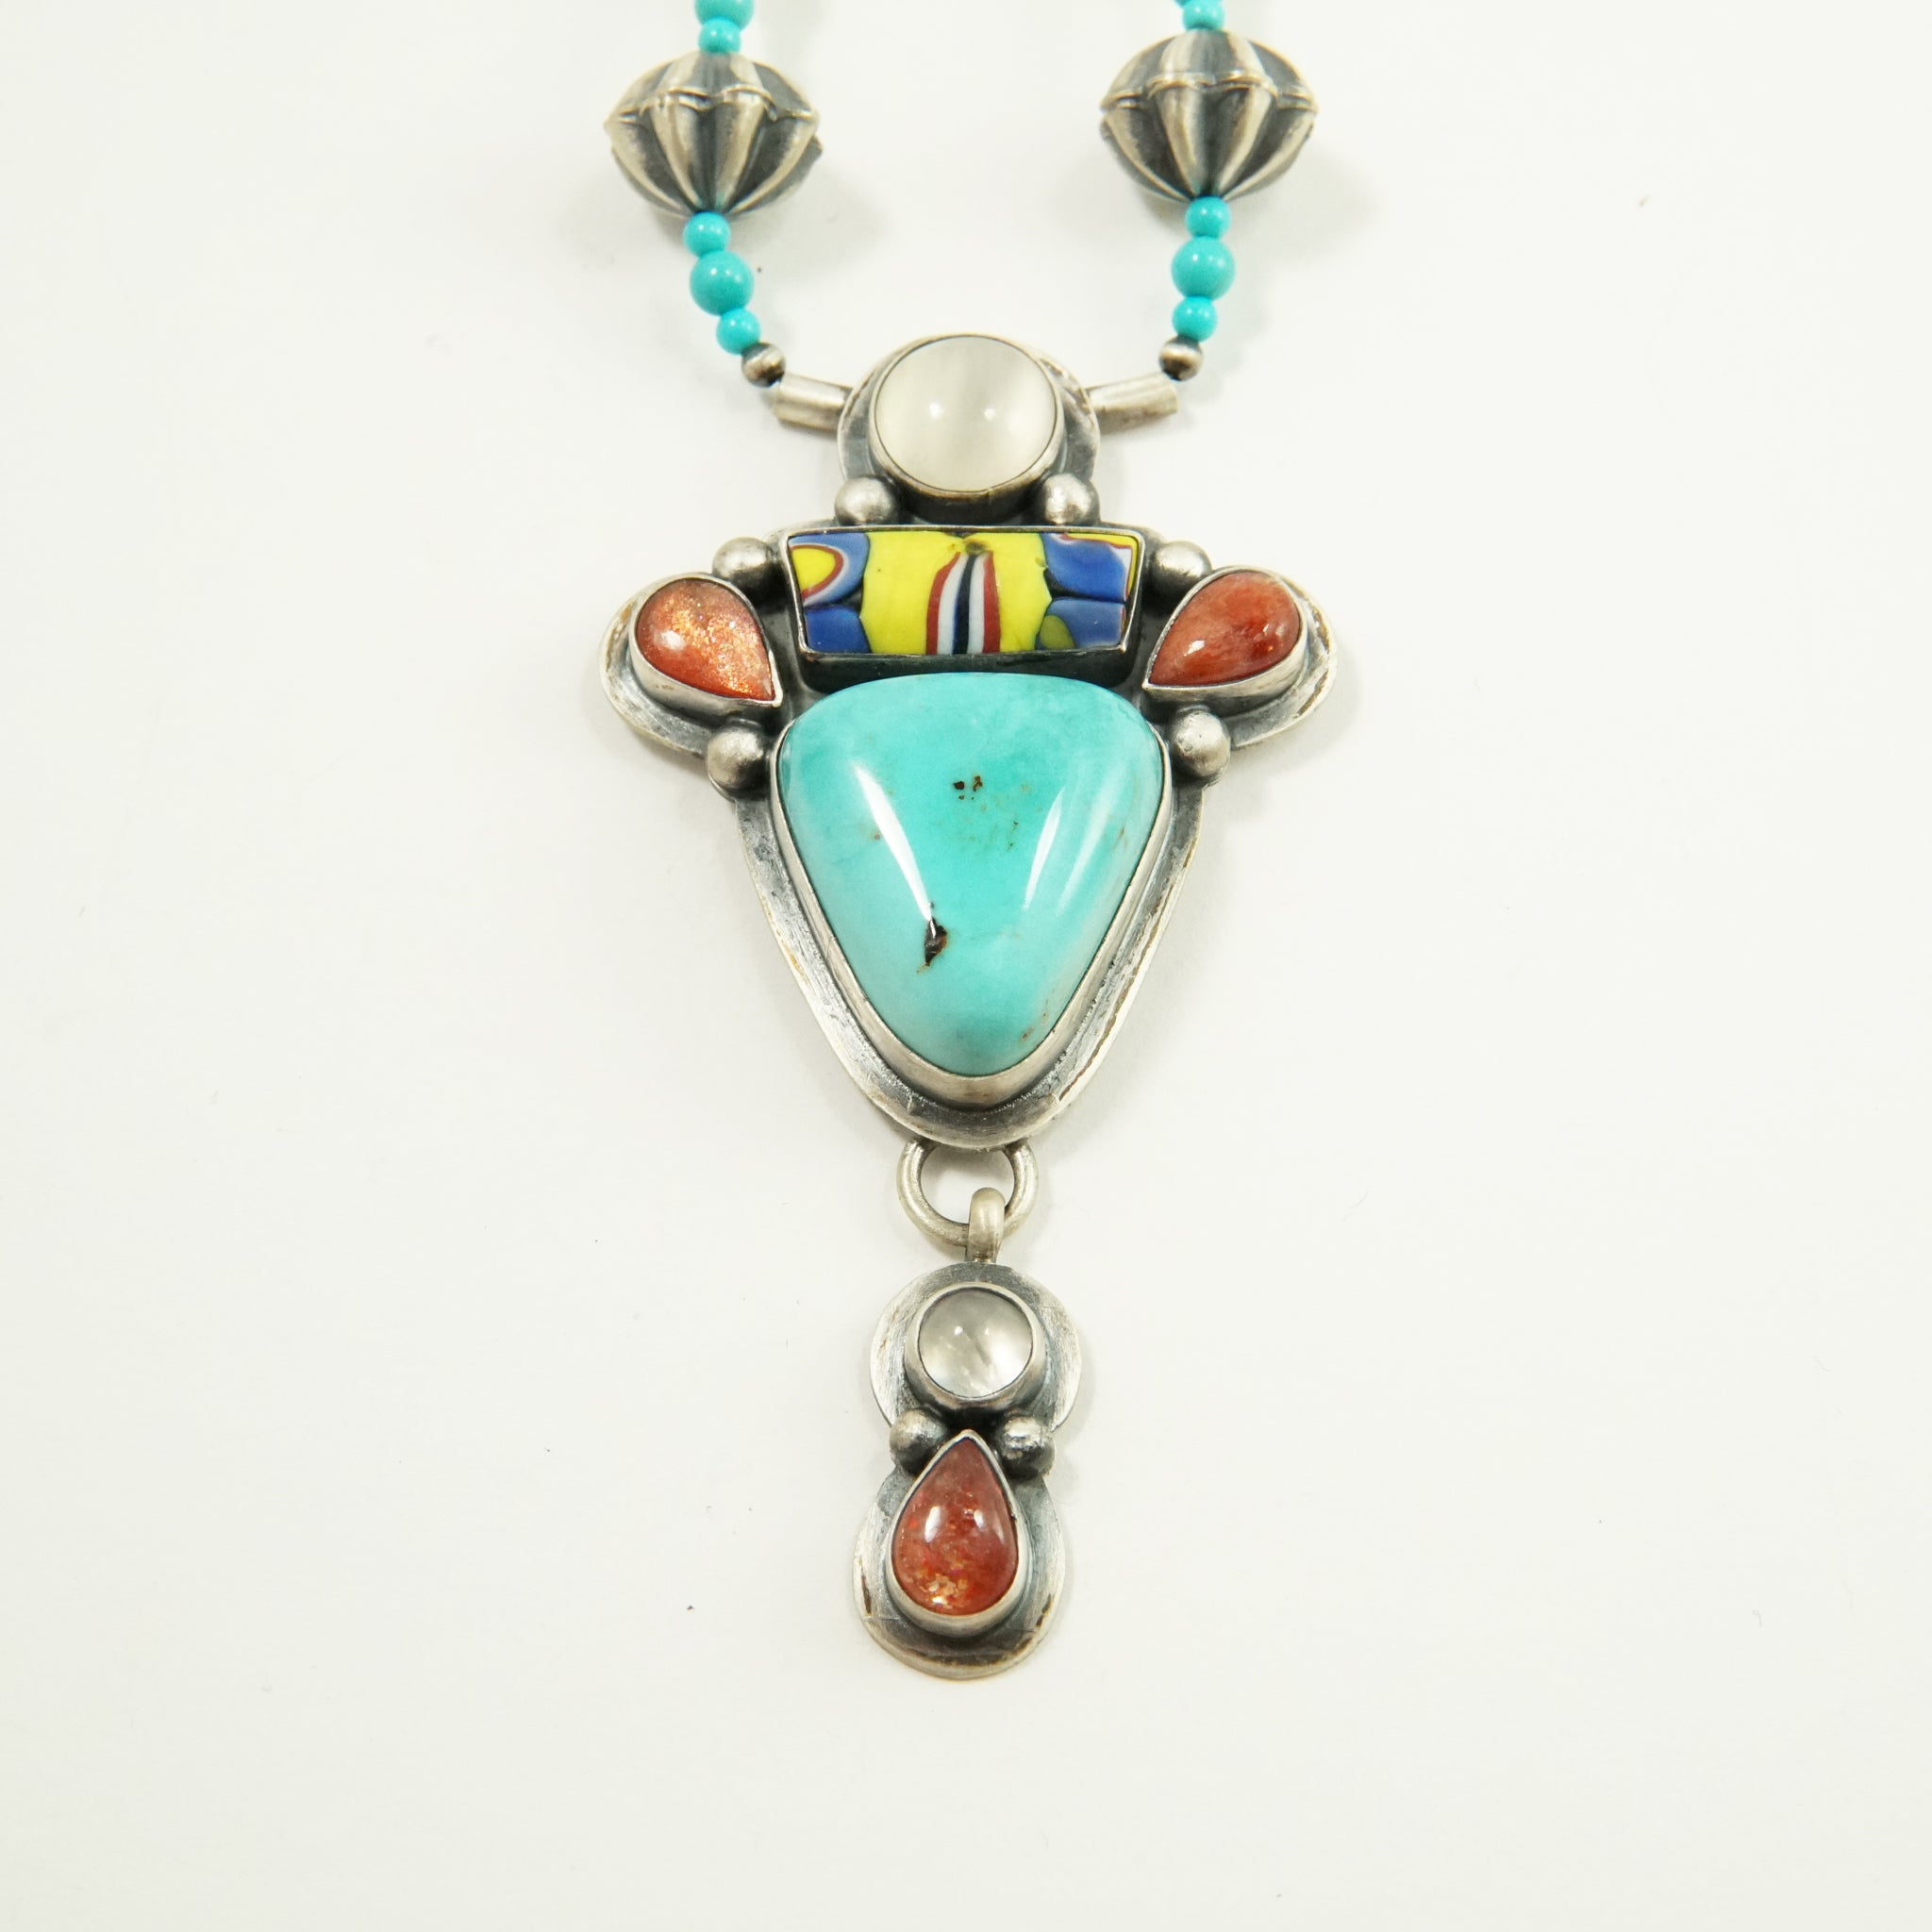 Trade Beads, Turquoise & Moonstone Necklace by Jimmy Secatero